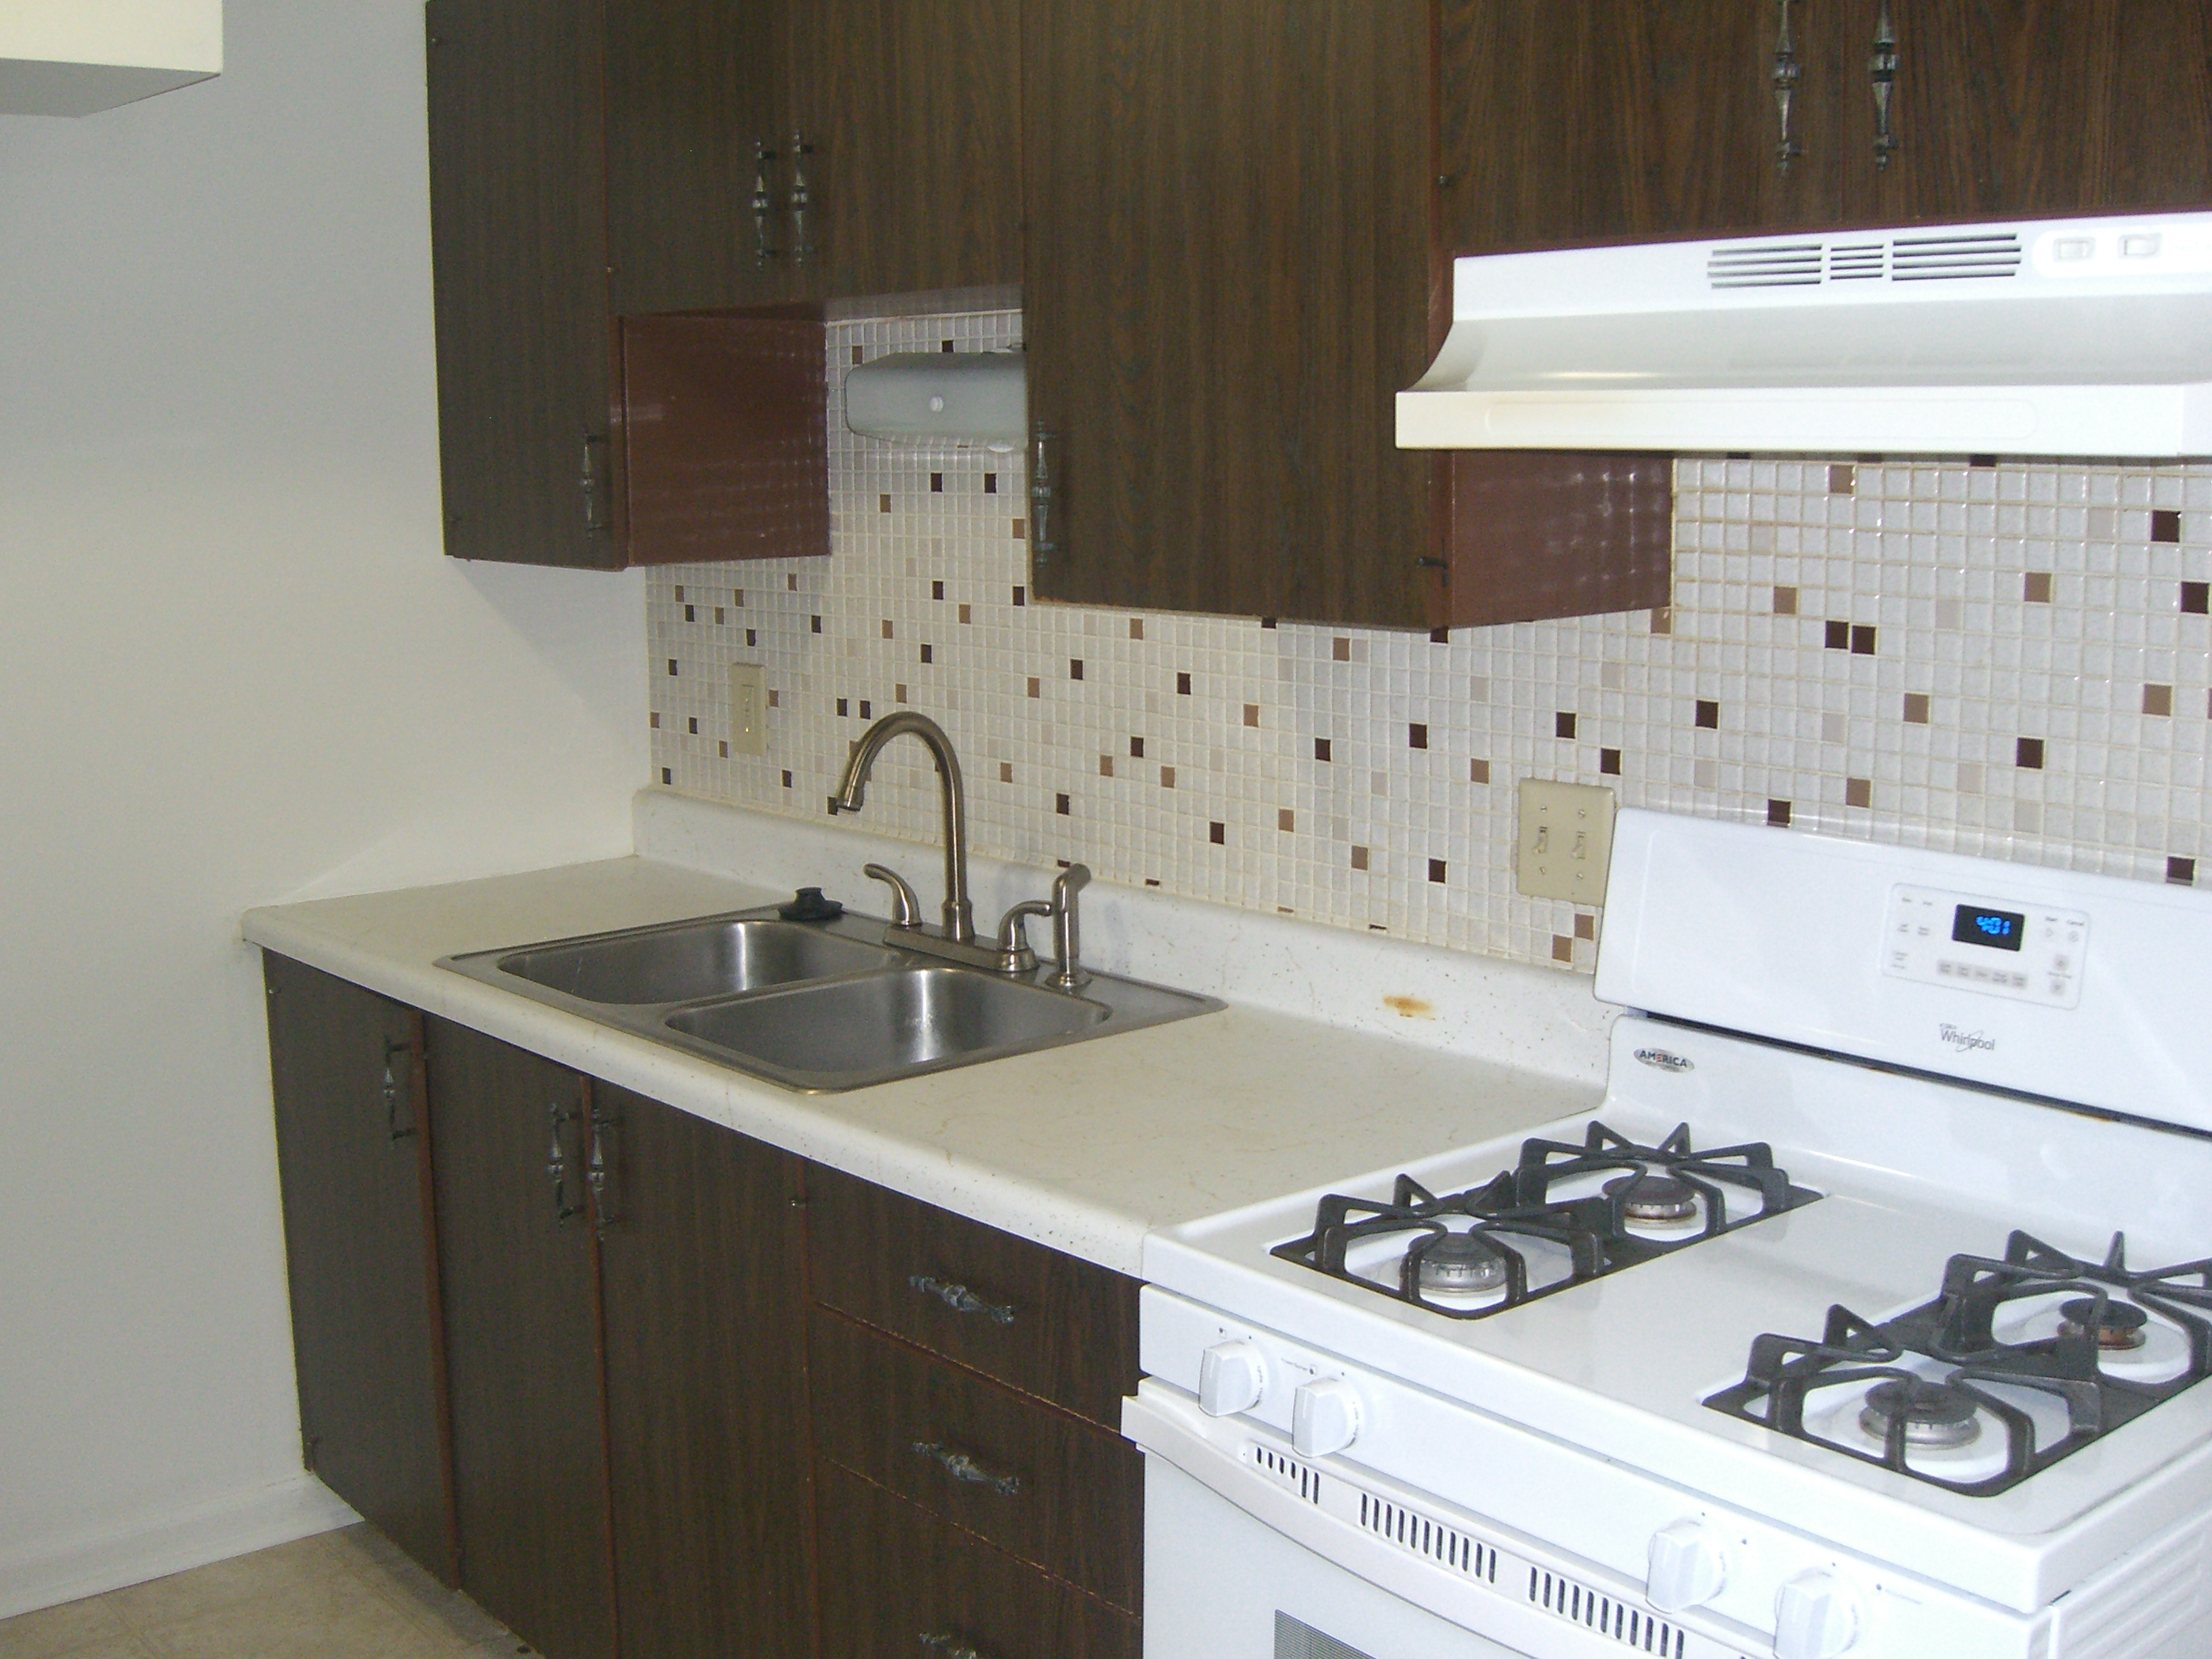 Large Kitchen Features An Eat In Dining Area. The Kitchen Has A Gas Range,  Refrigerator And Garbage Disposal. The Kitchen Dimensions Are 16u00276 X 8u00276.